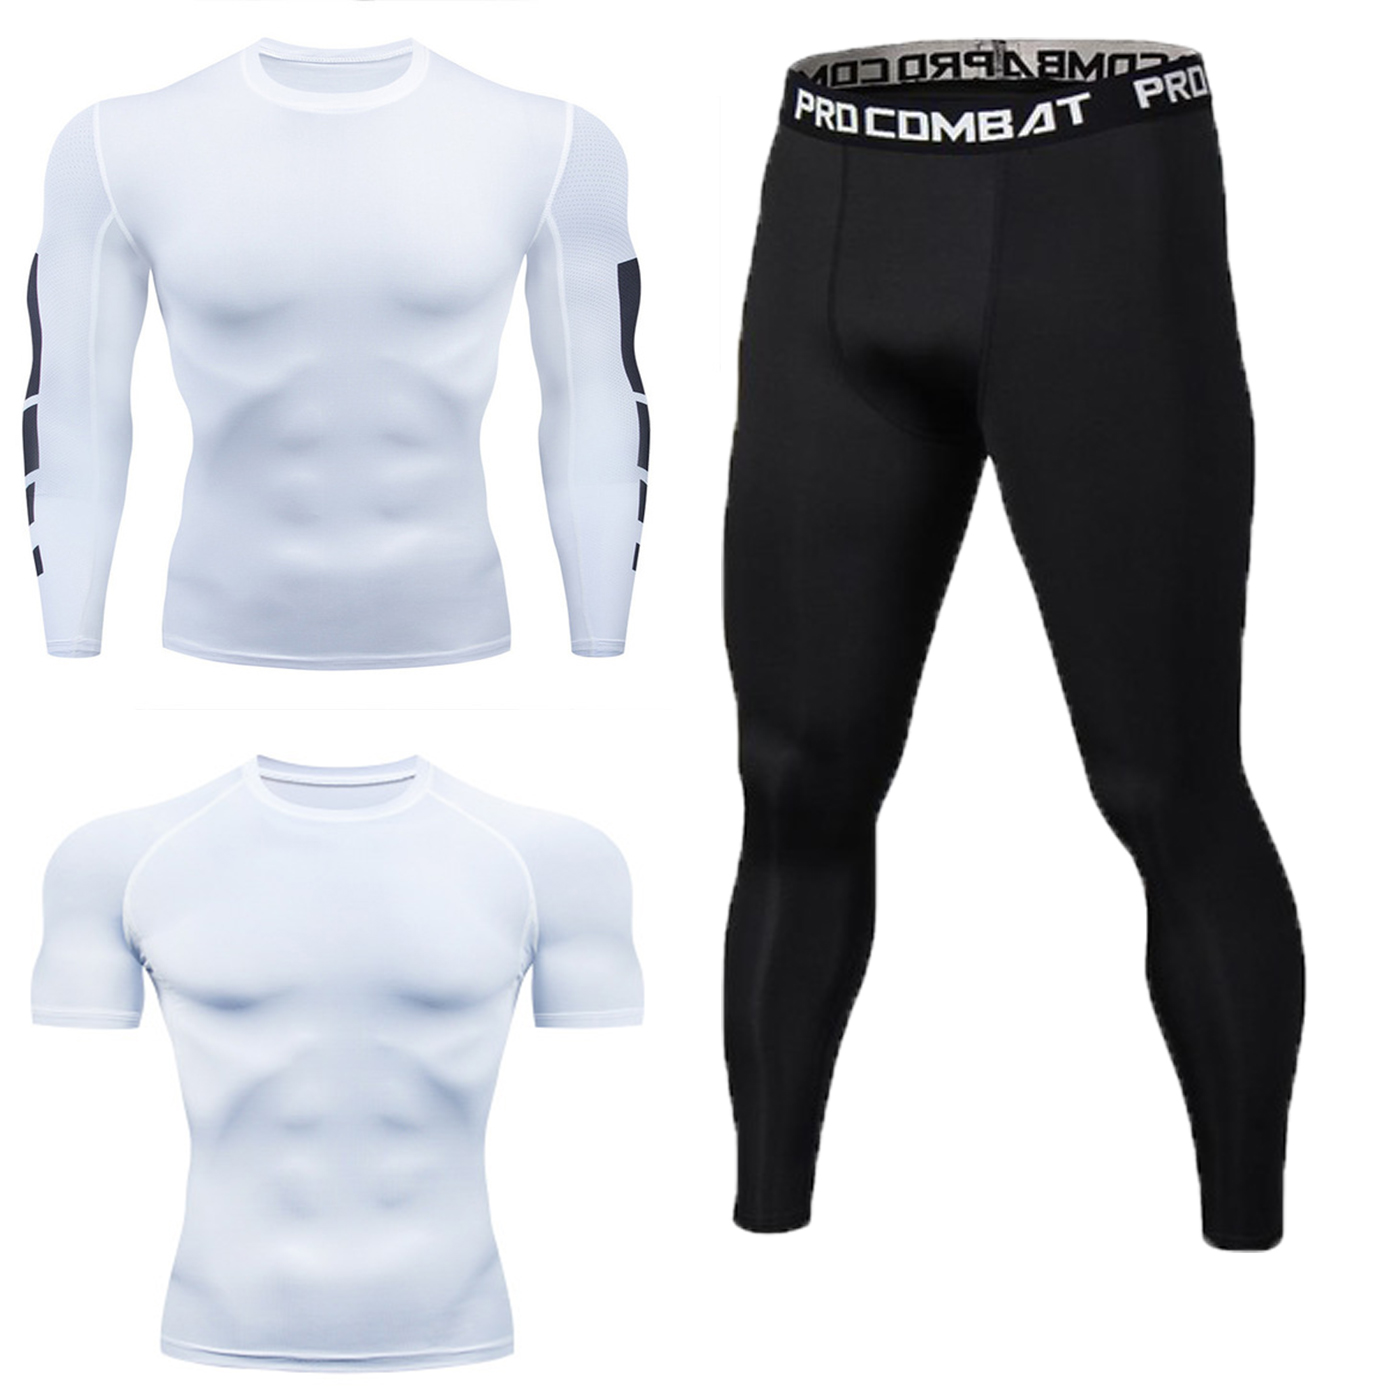 Sports Set Men Elasticity Quick-drying T-shirt Gym Pro Workout Clothes Three-piece Set-Compression Running Clothing